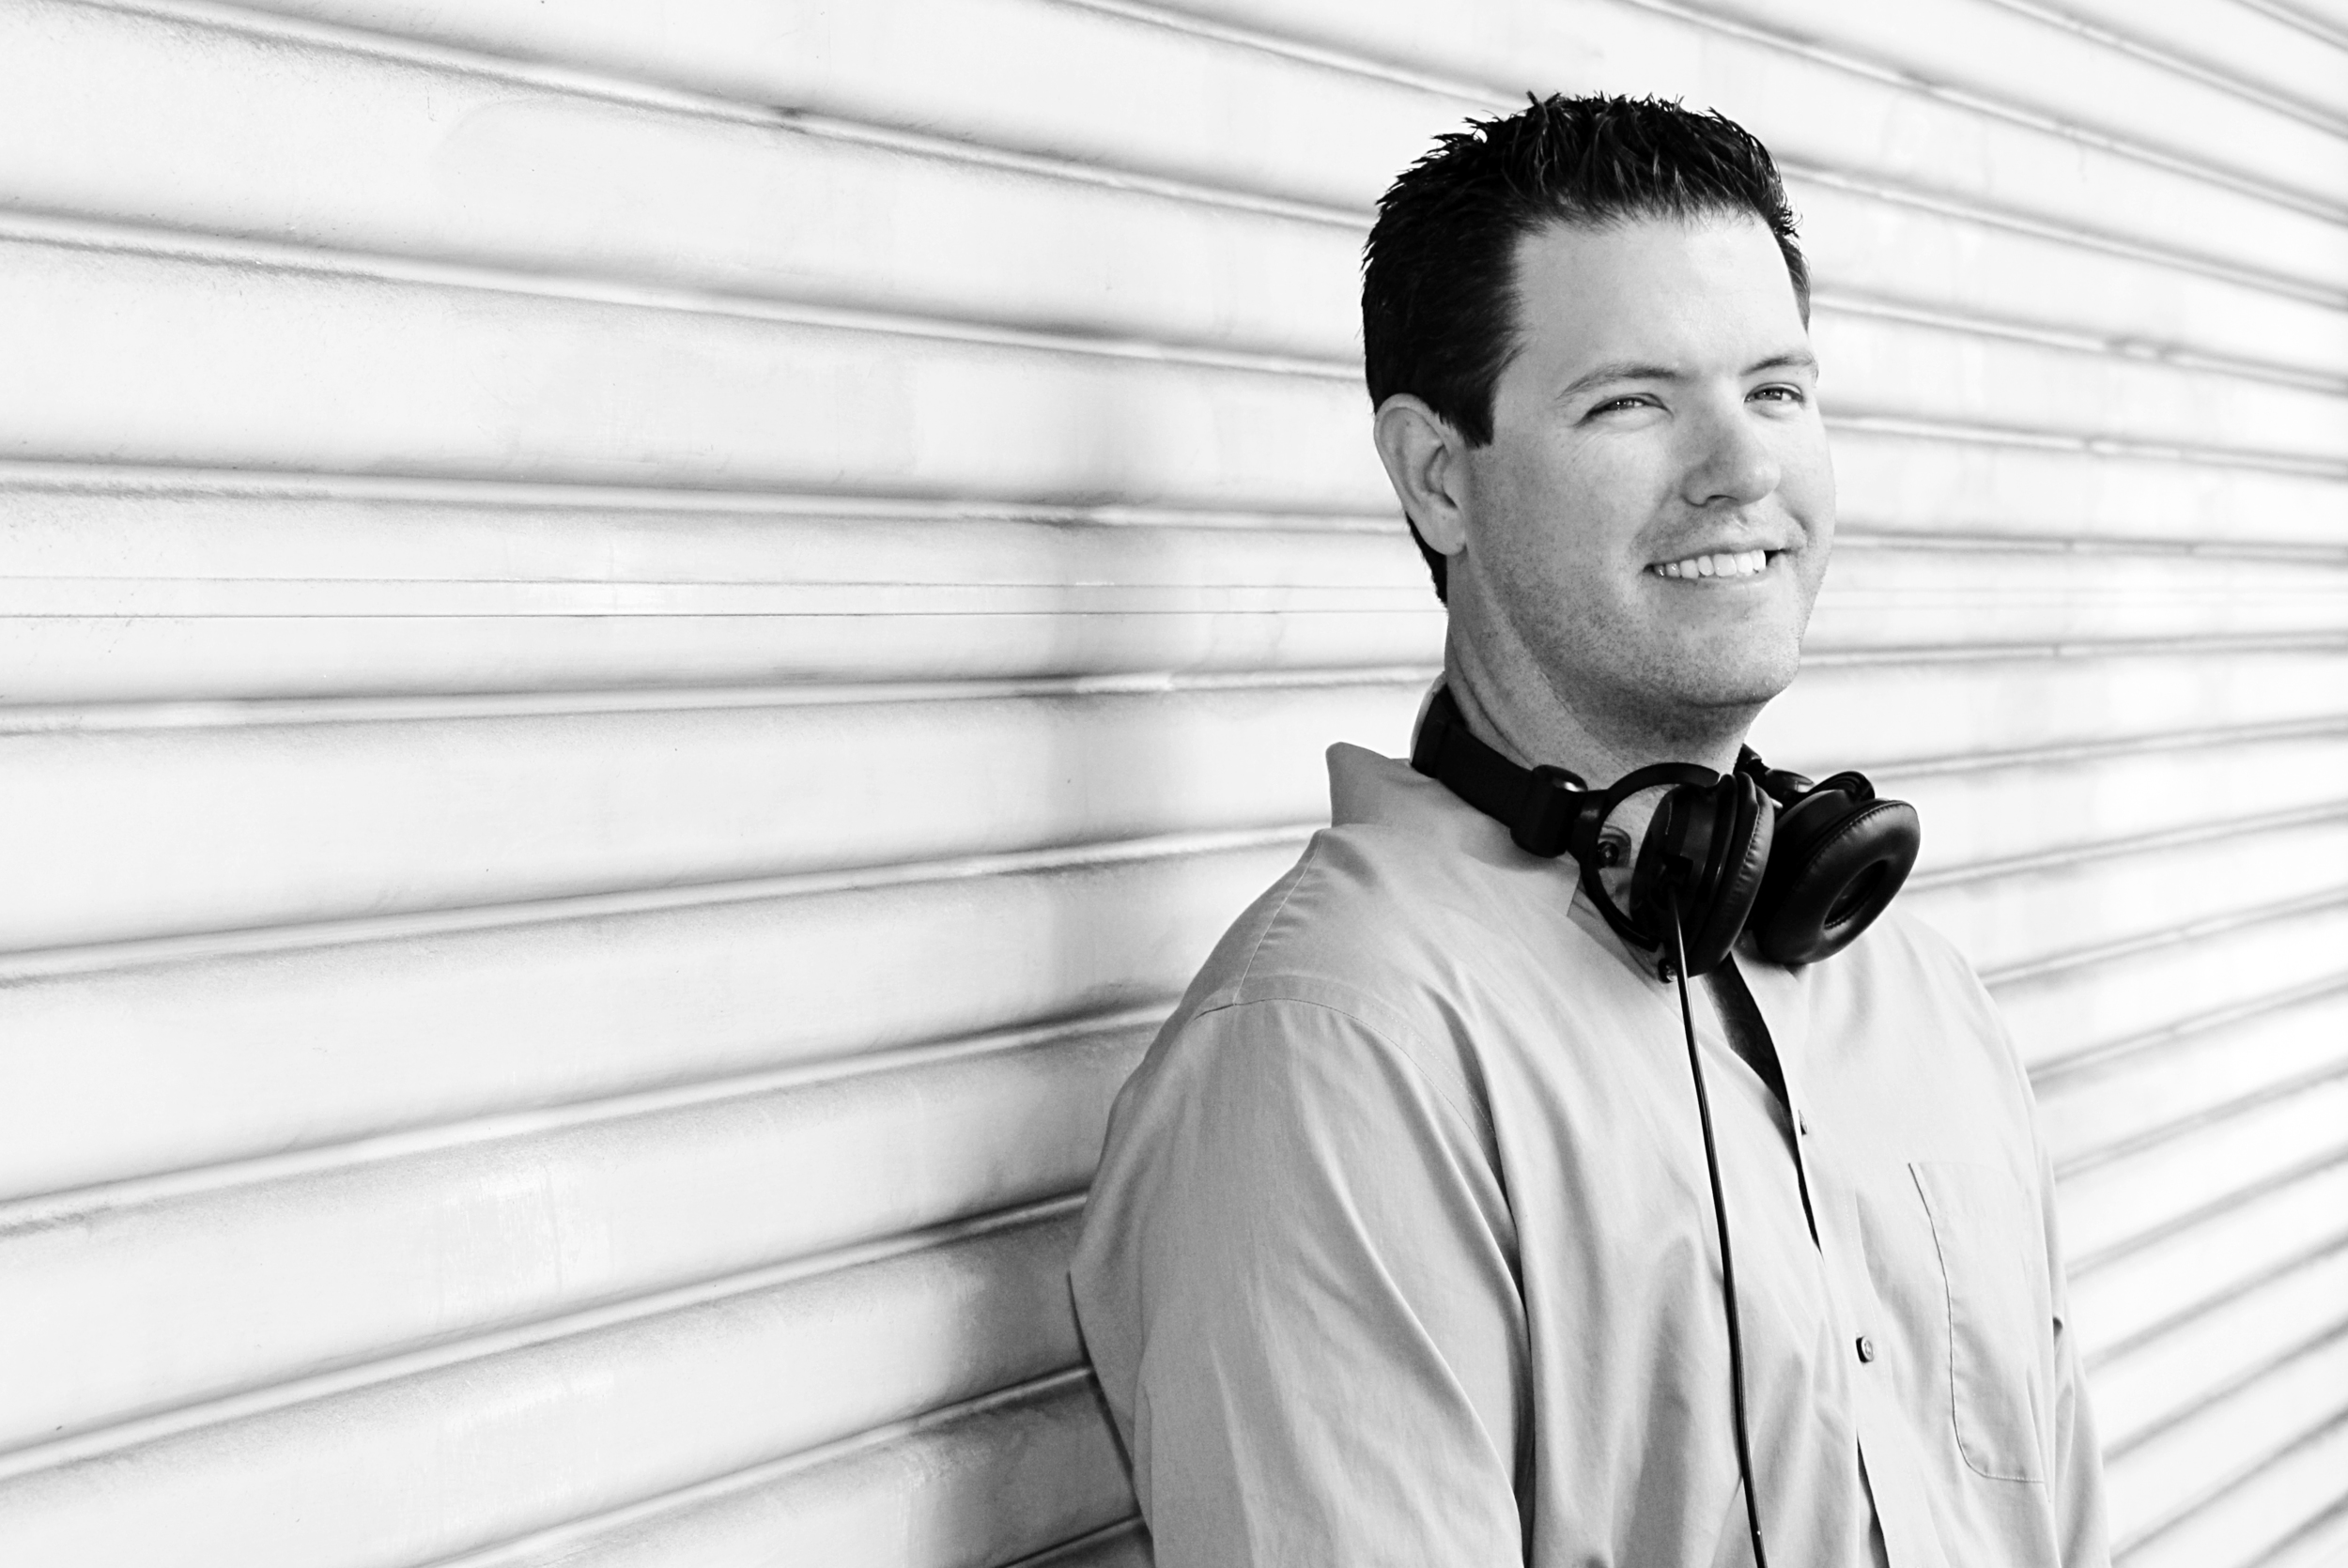 Dj David Cutler with hit it music productions